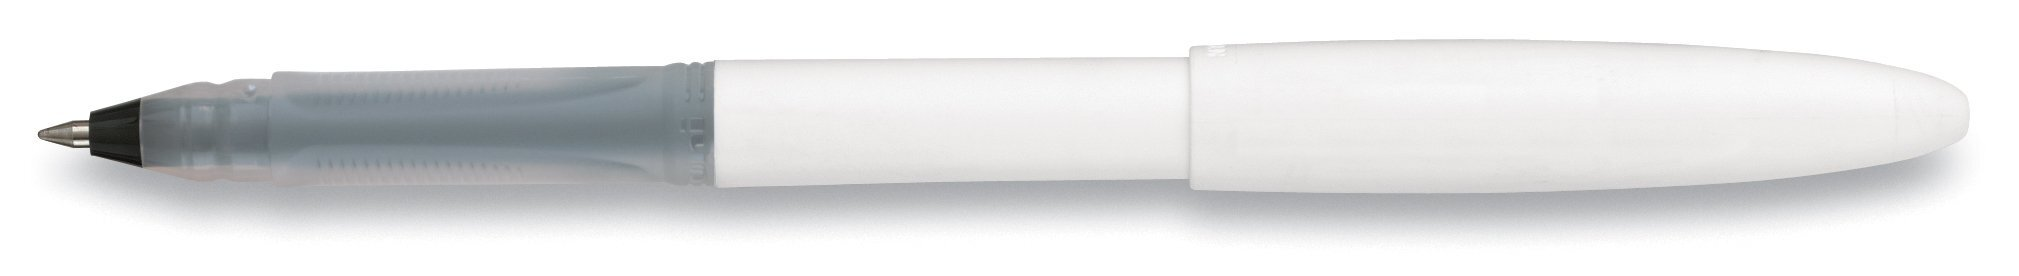 Uni-ball® Gelstick Pen